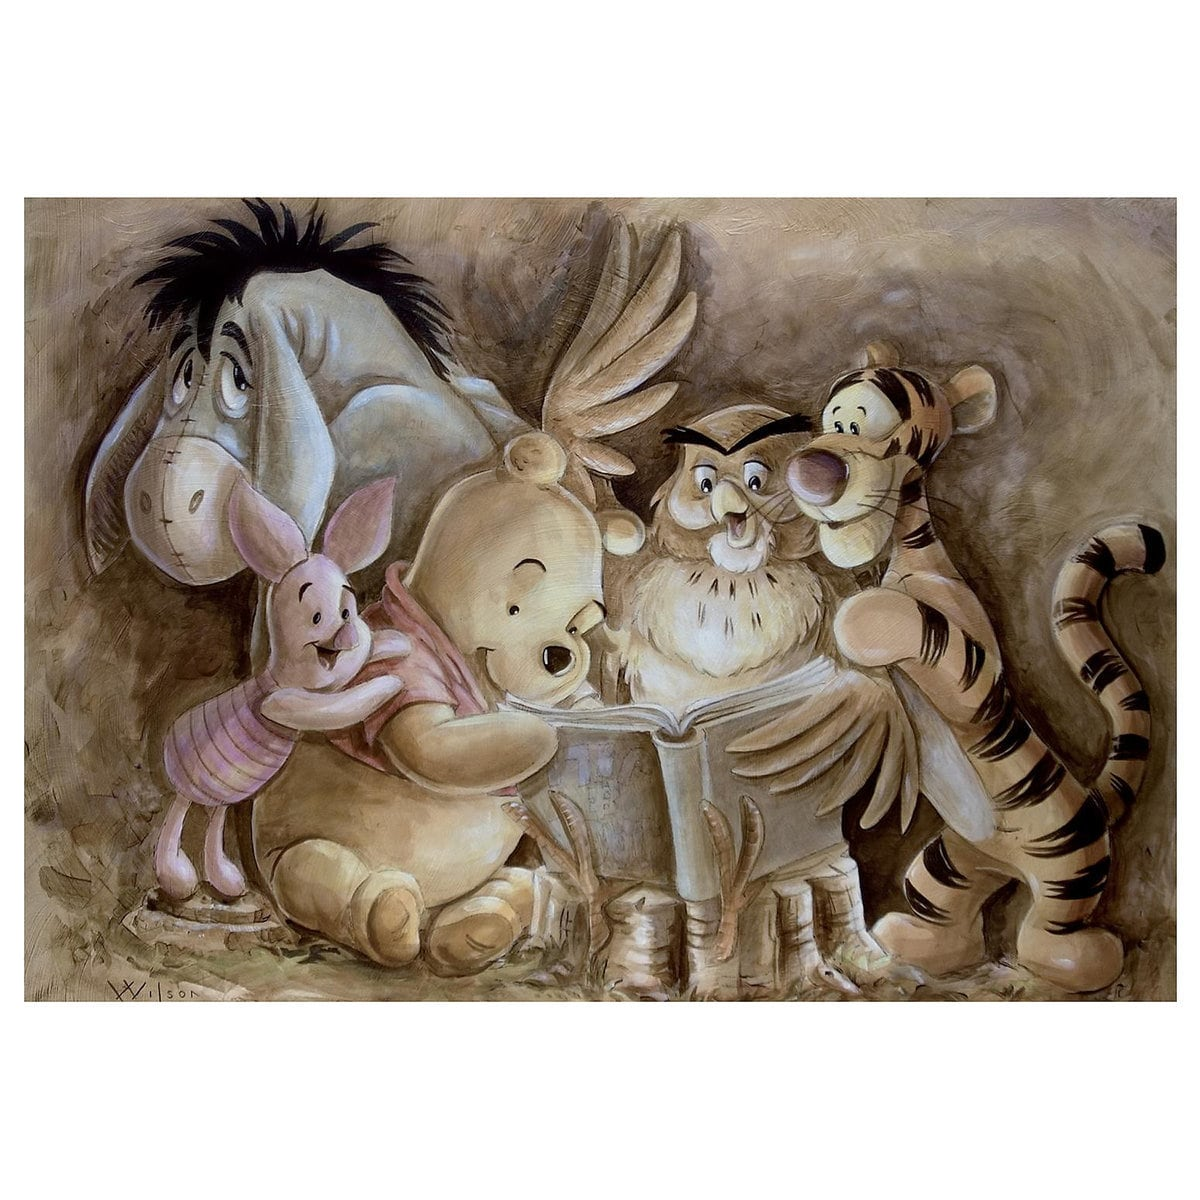 abbe04c8f3 Product Image of Winnie the Pooh   Pooh and Company   Giclée by Darren